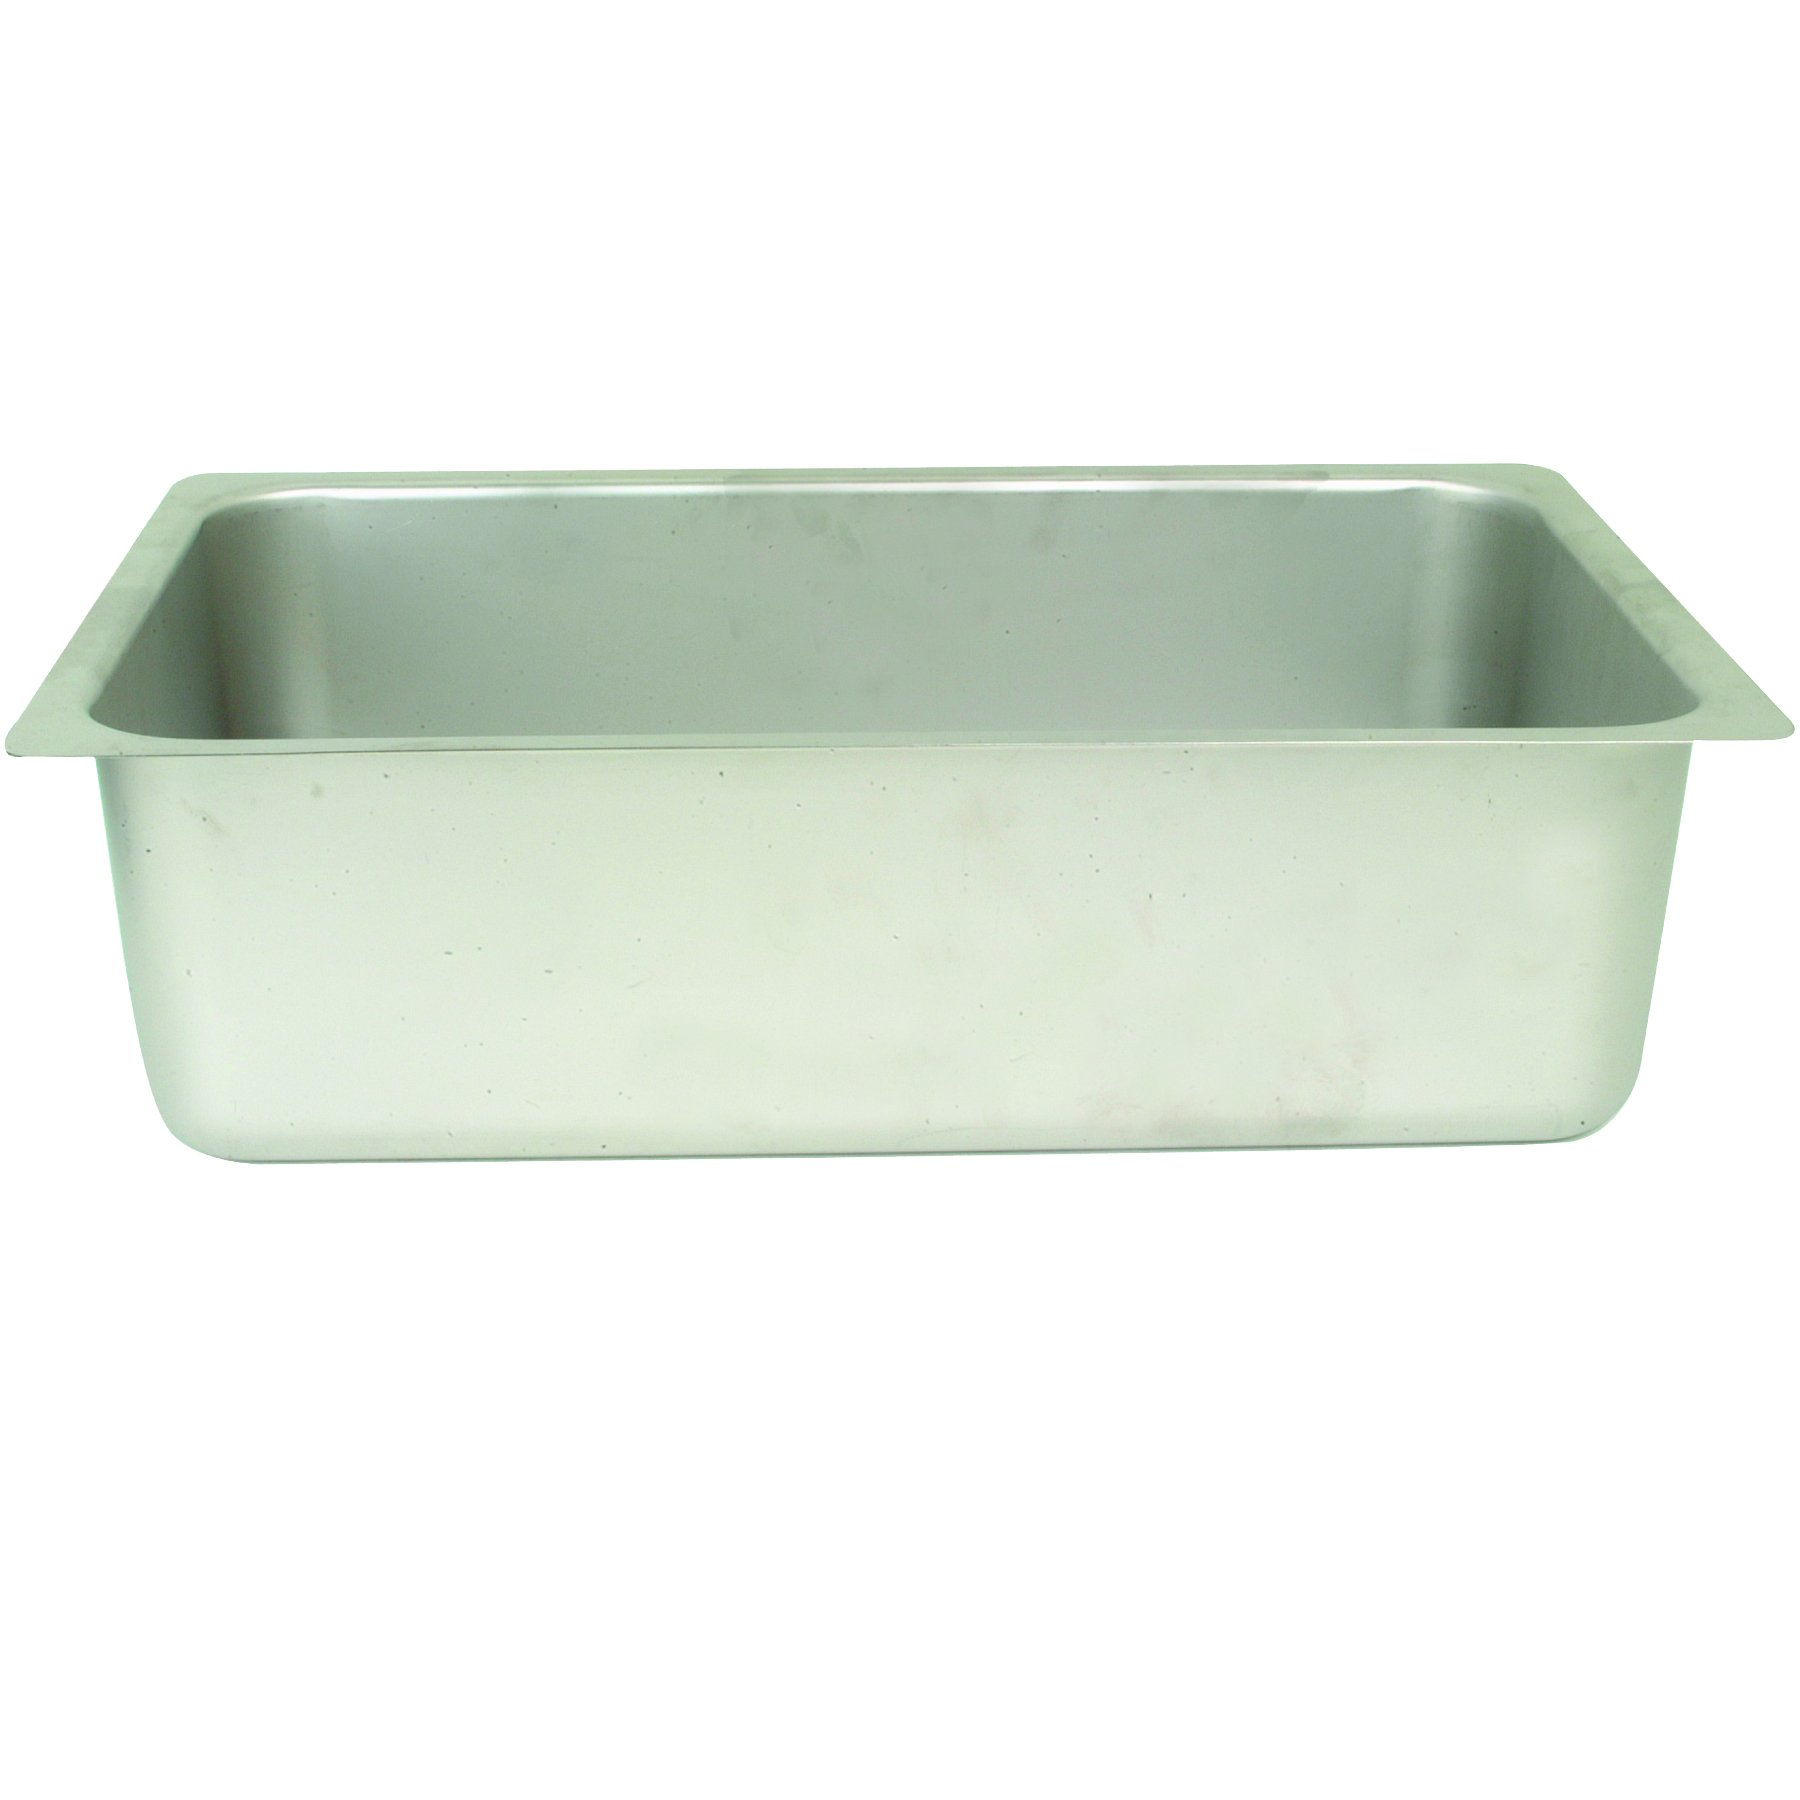 Excellante 849851008205 Stainless Steel Spillage Pan